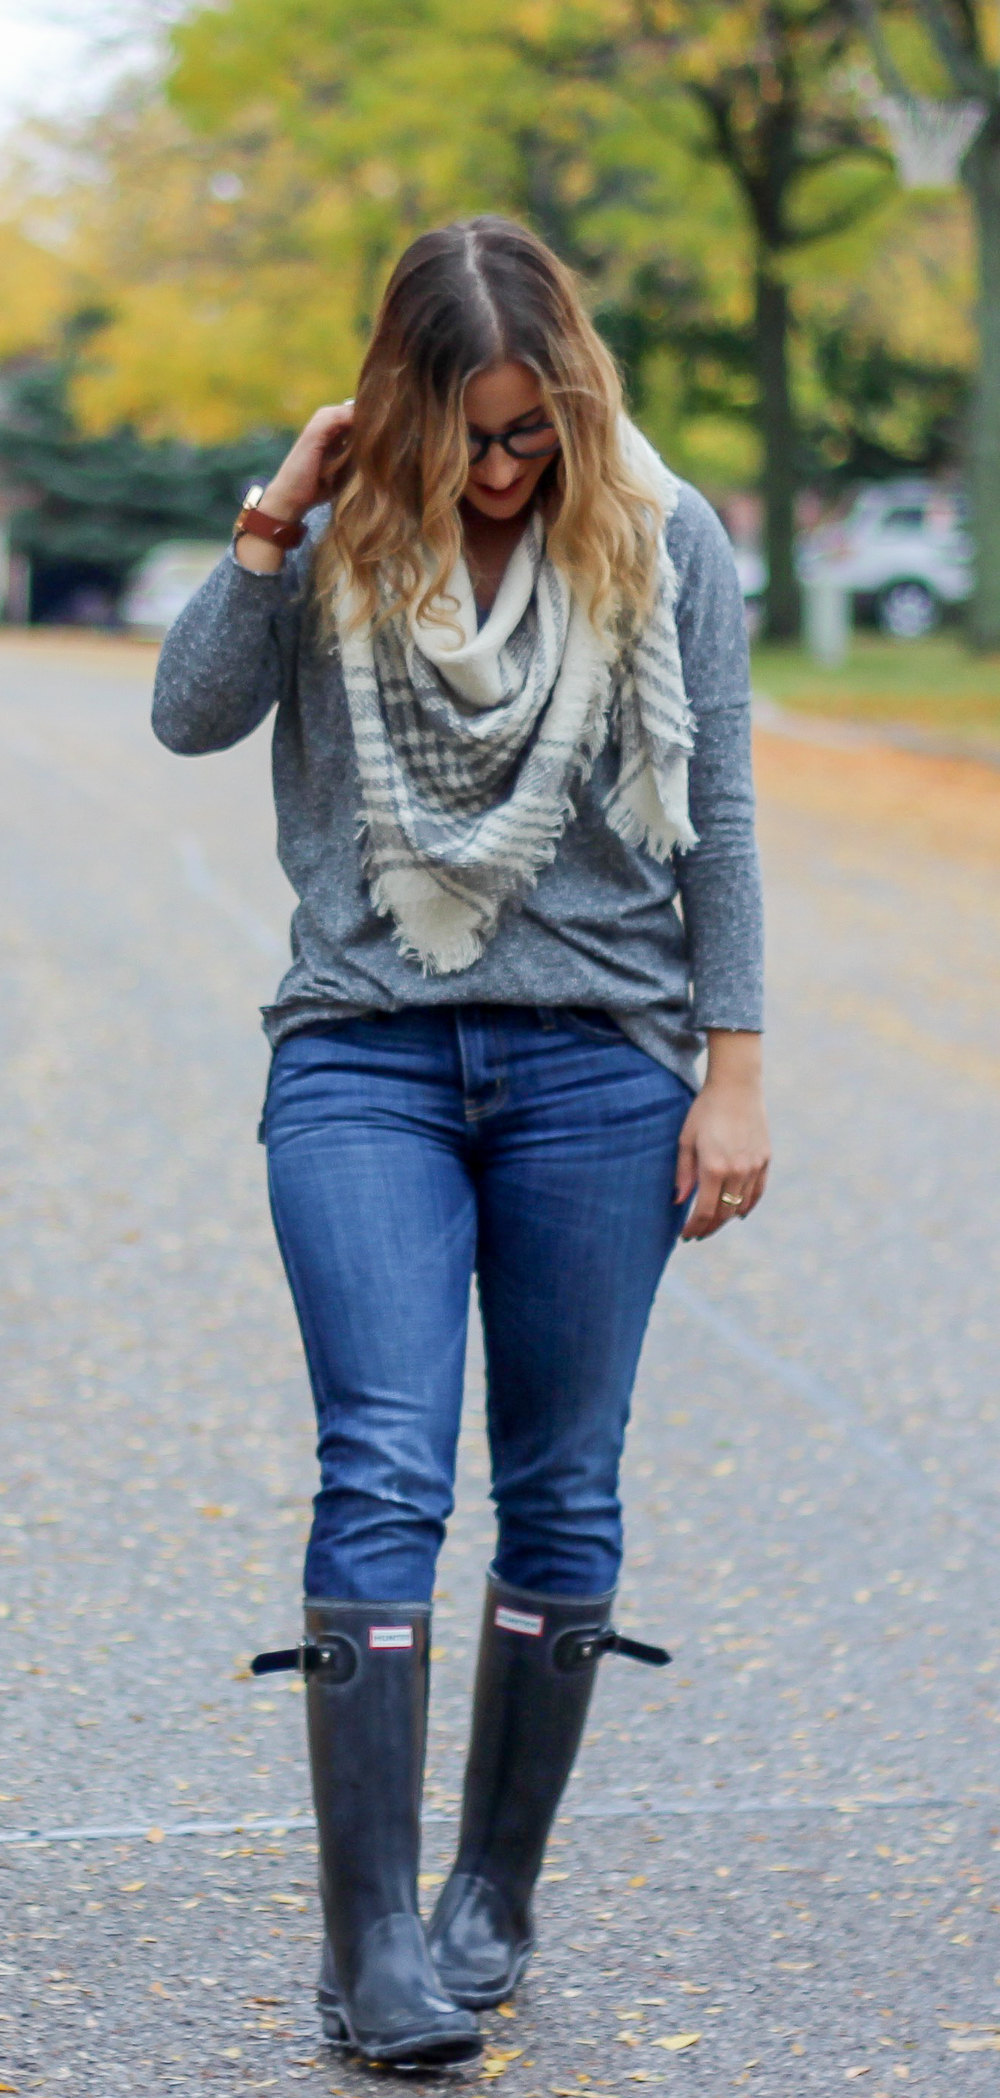 Guess Square Plaid Scarf with jeans